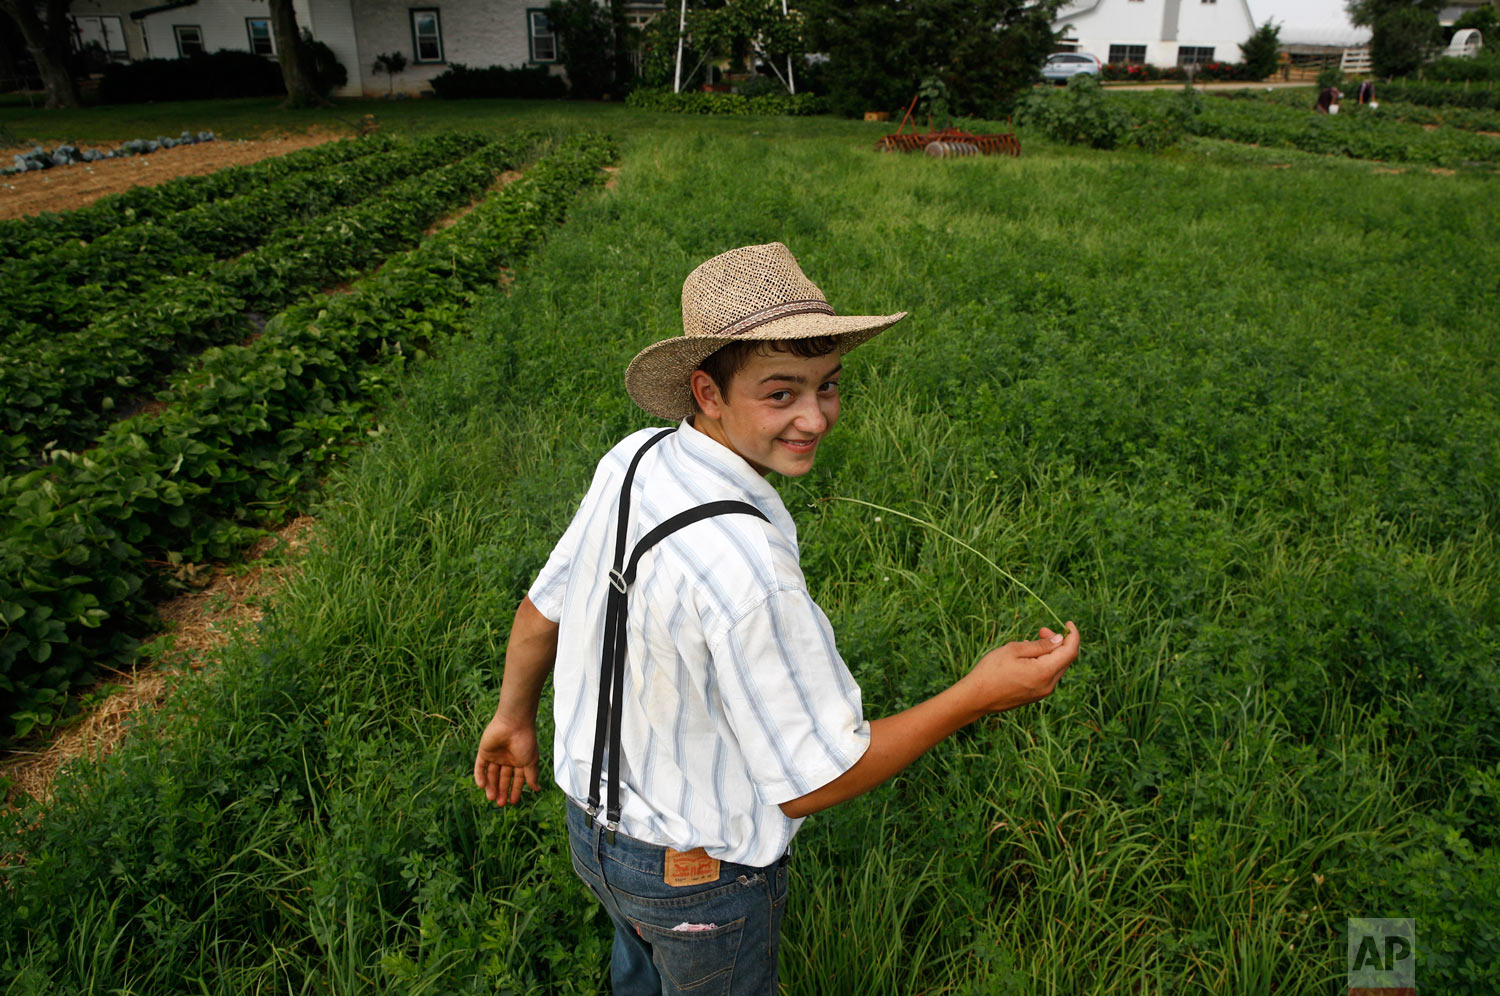 A boy belonging to an Old Order Mennonite family walks in a field on June 18, 2018, at his family's farm in New Holland, Pennsylvania. (AP Photo/Patrick Semansky)